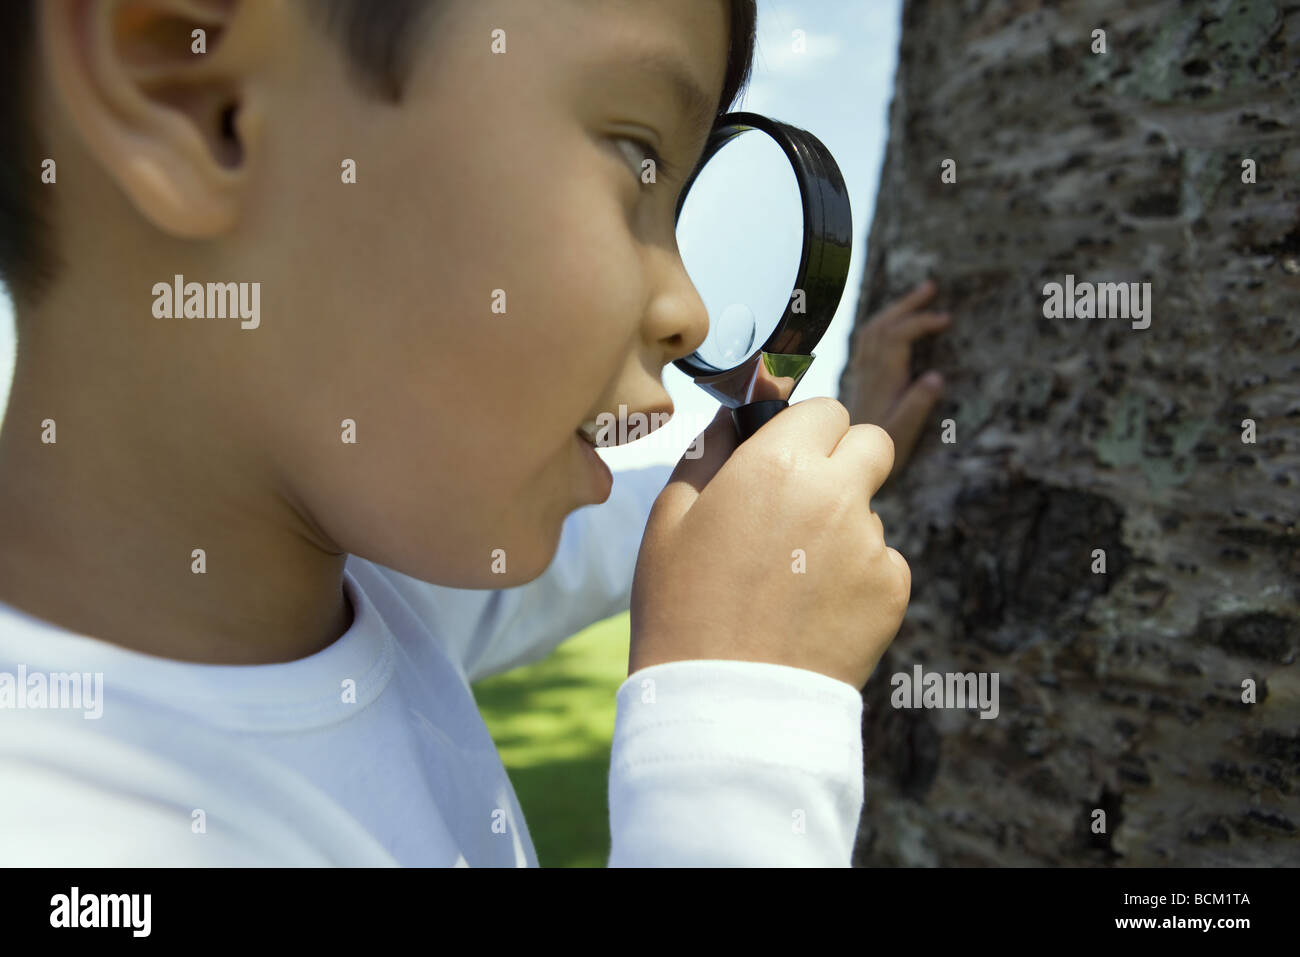 Boy looking at tree through magnifying glass - Stock Image